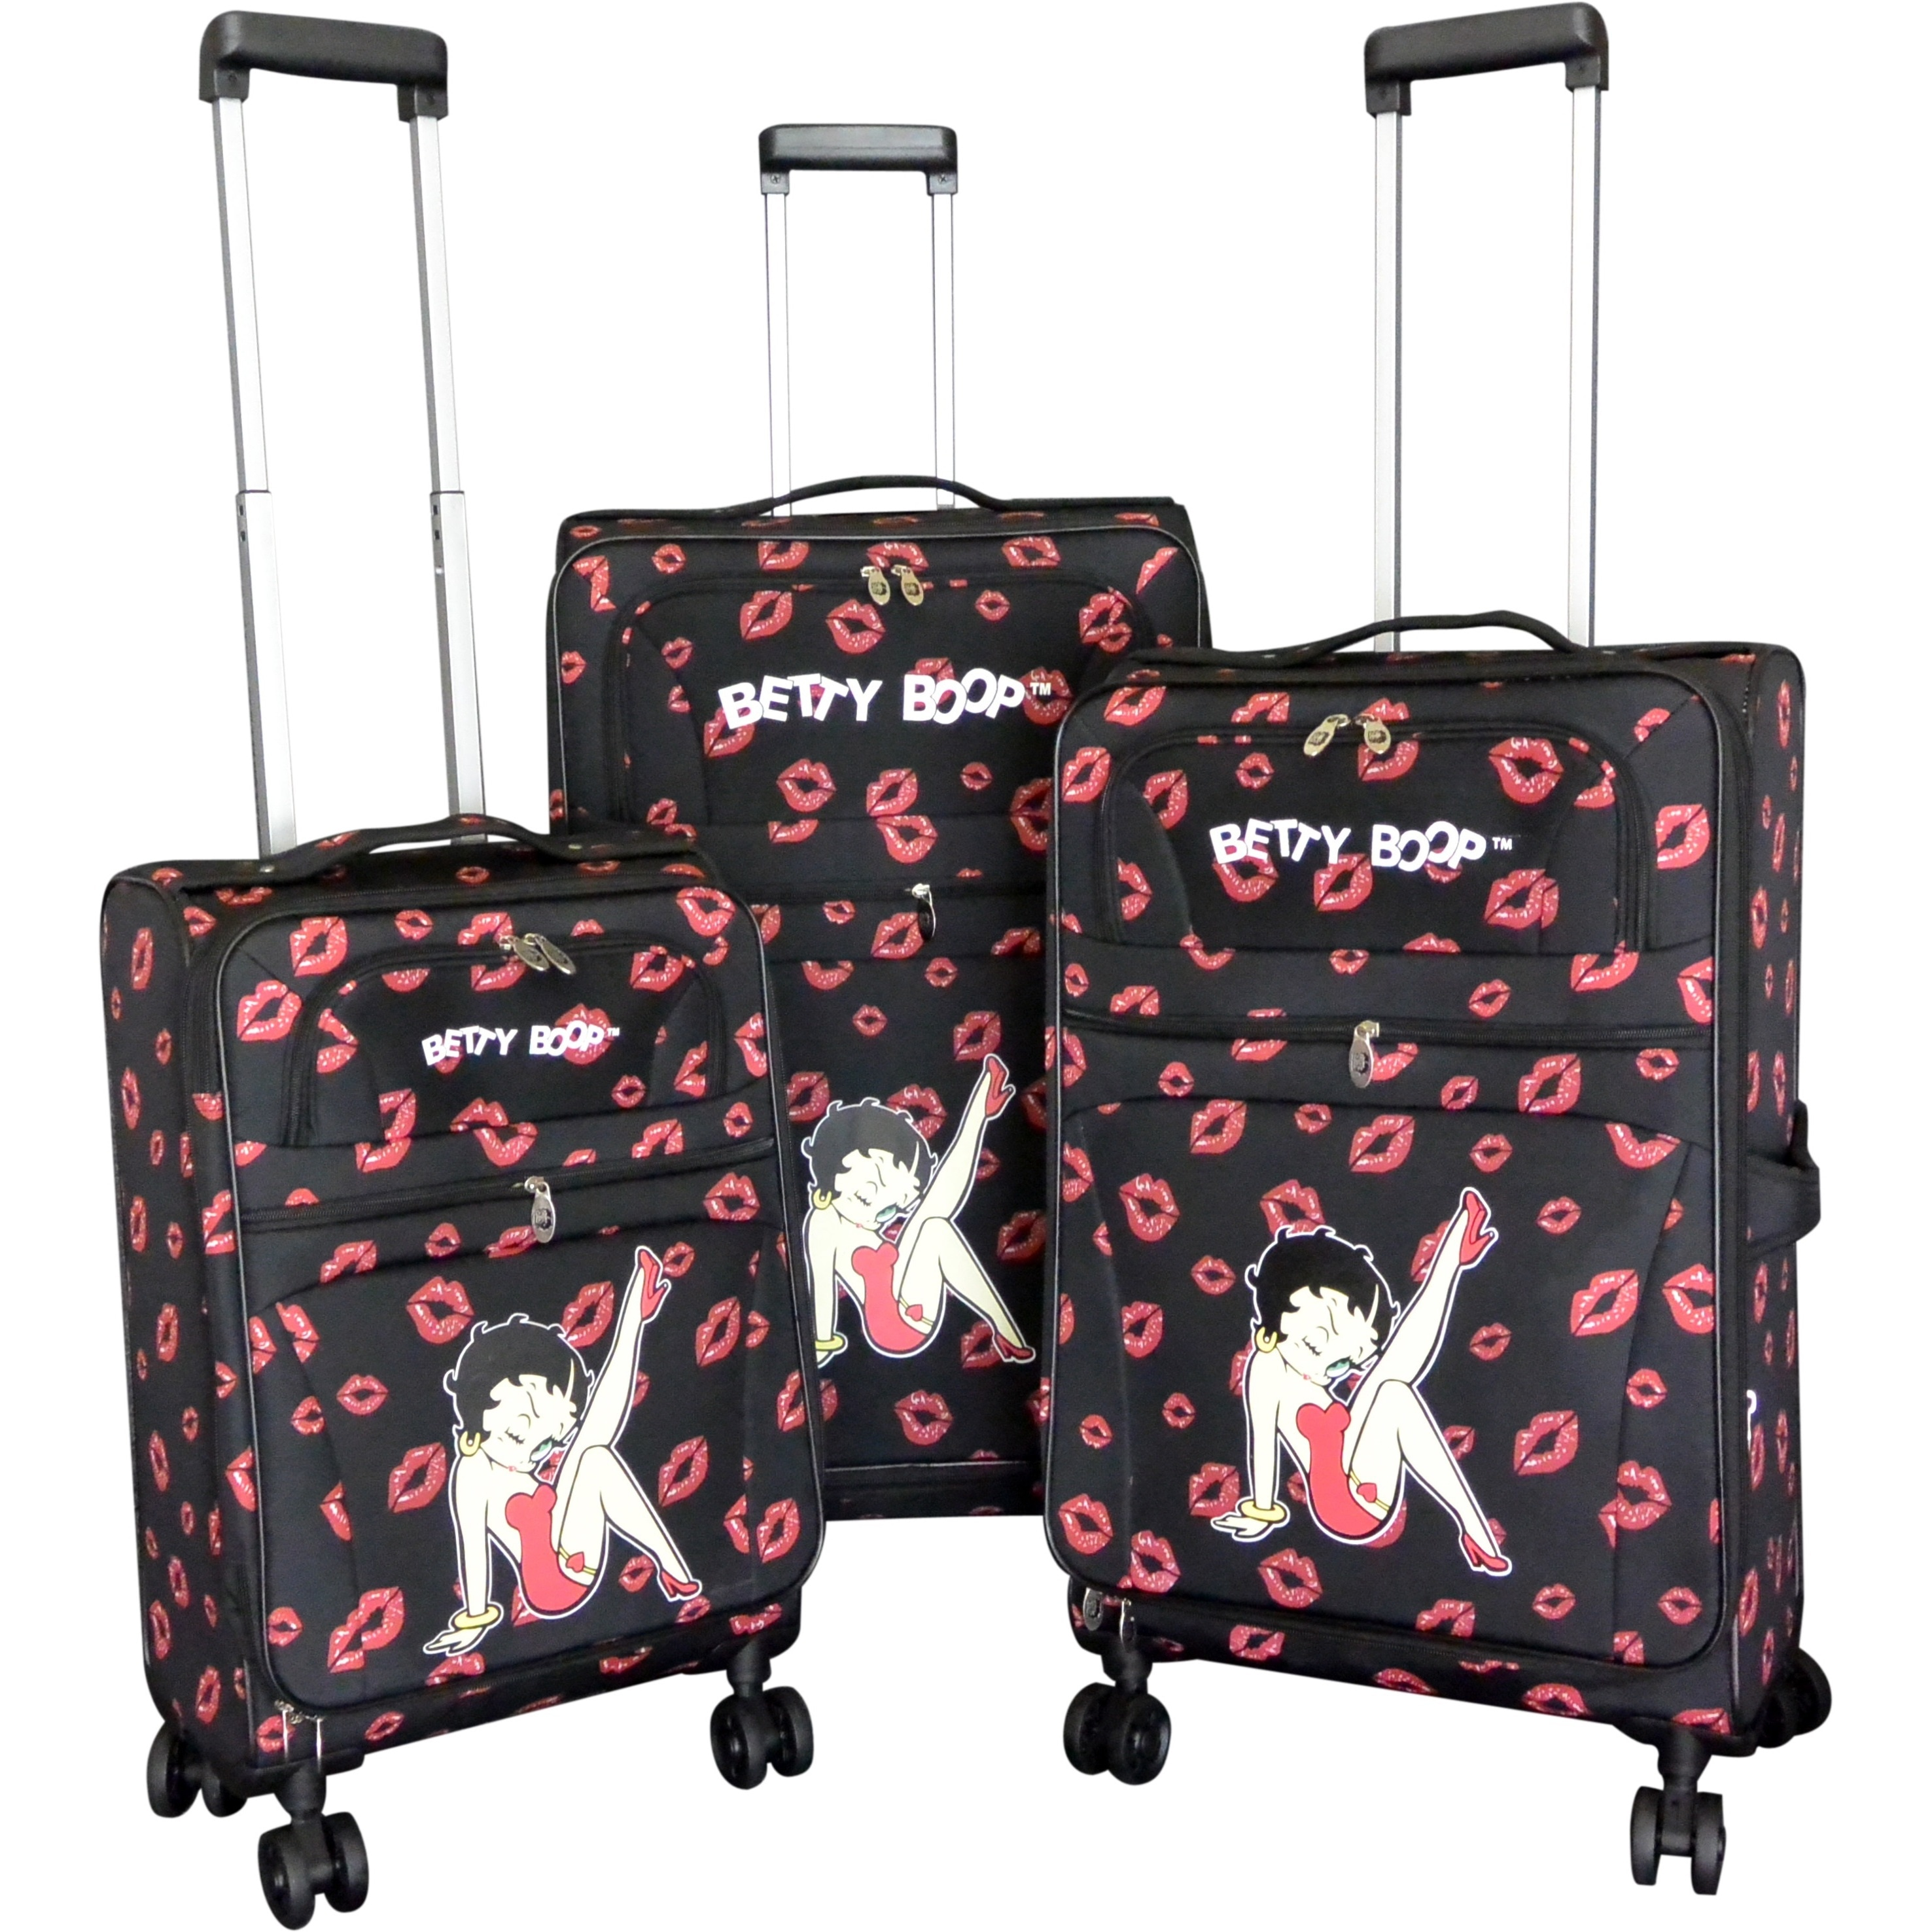 28 24 20 Betty Boop Black 3-piece Expandable Spinner Luggage Set